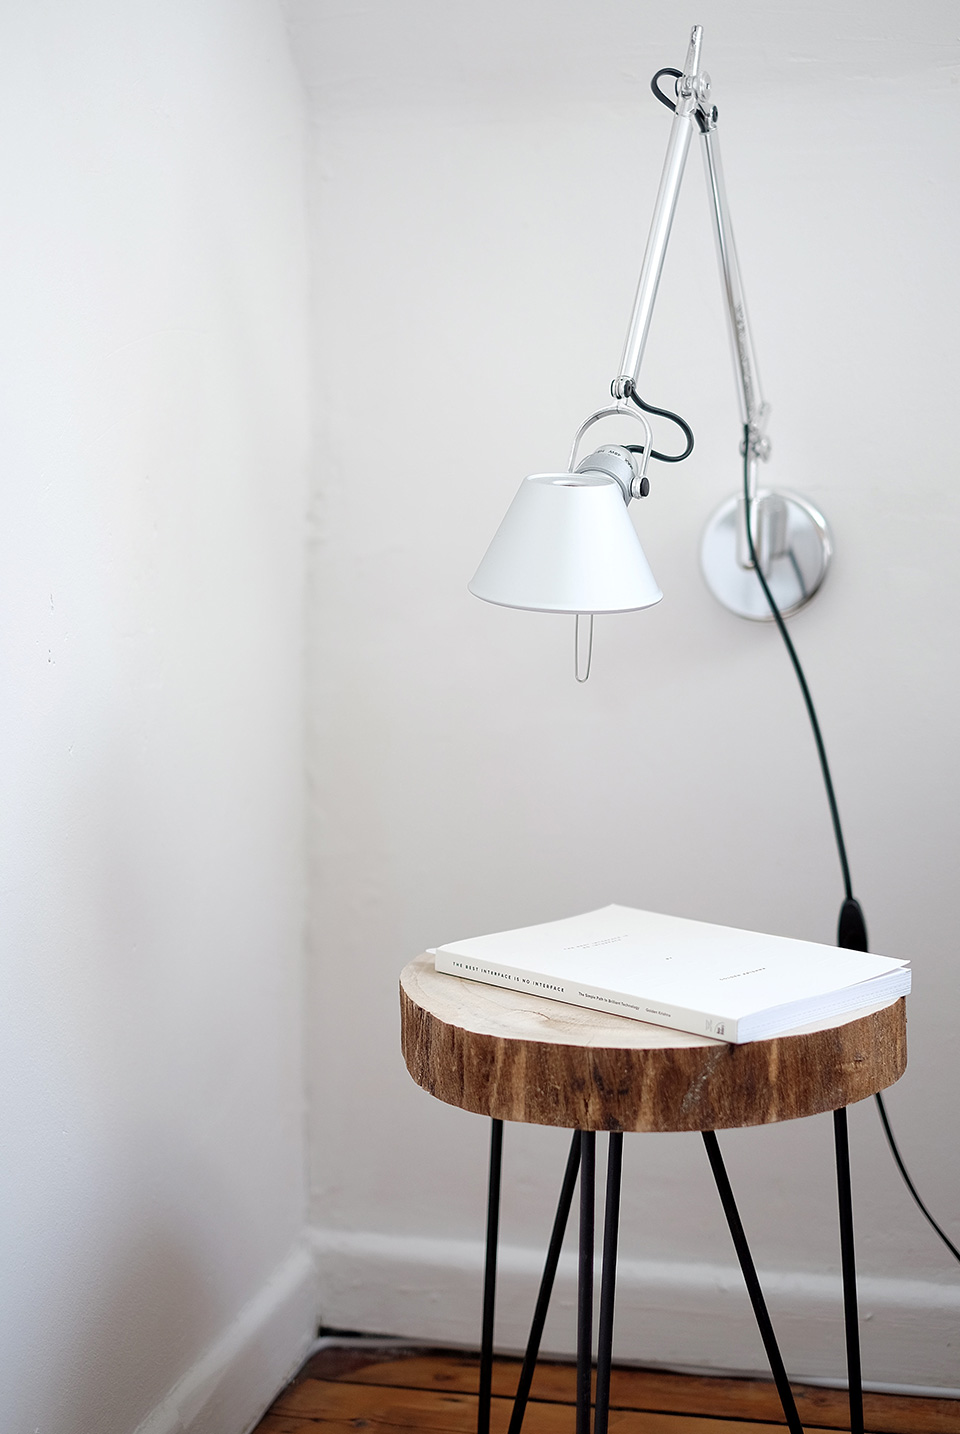 A stool with a book on top